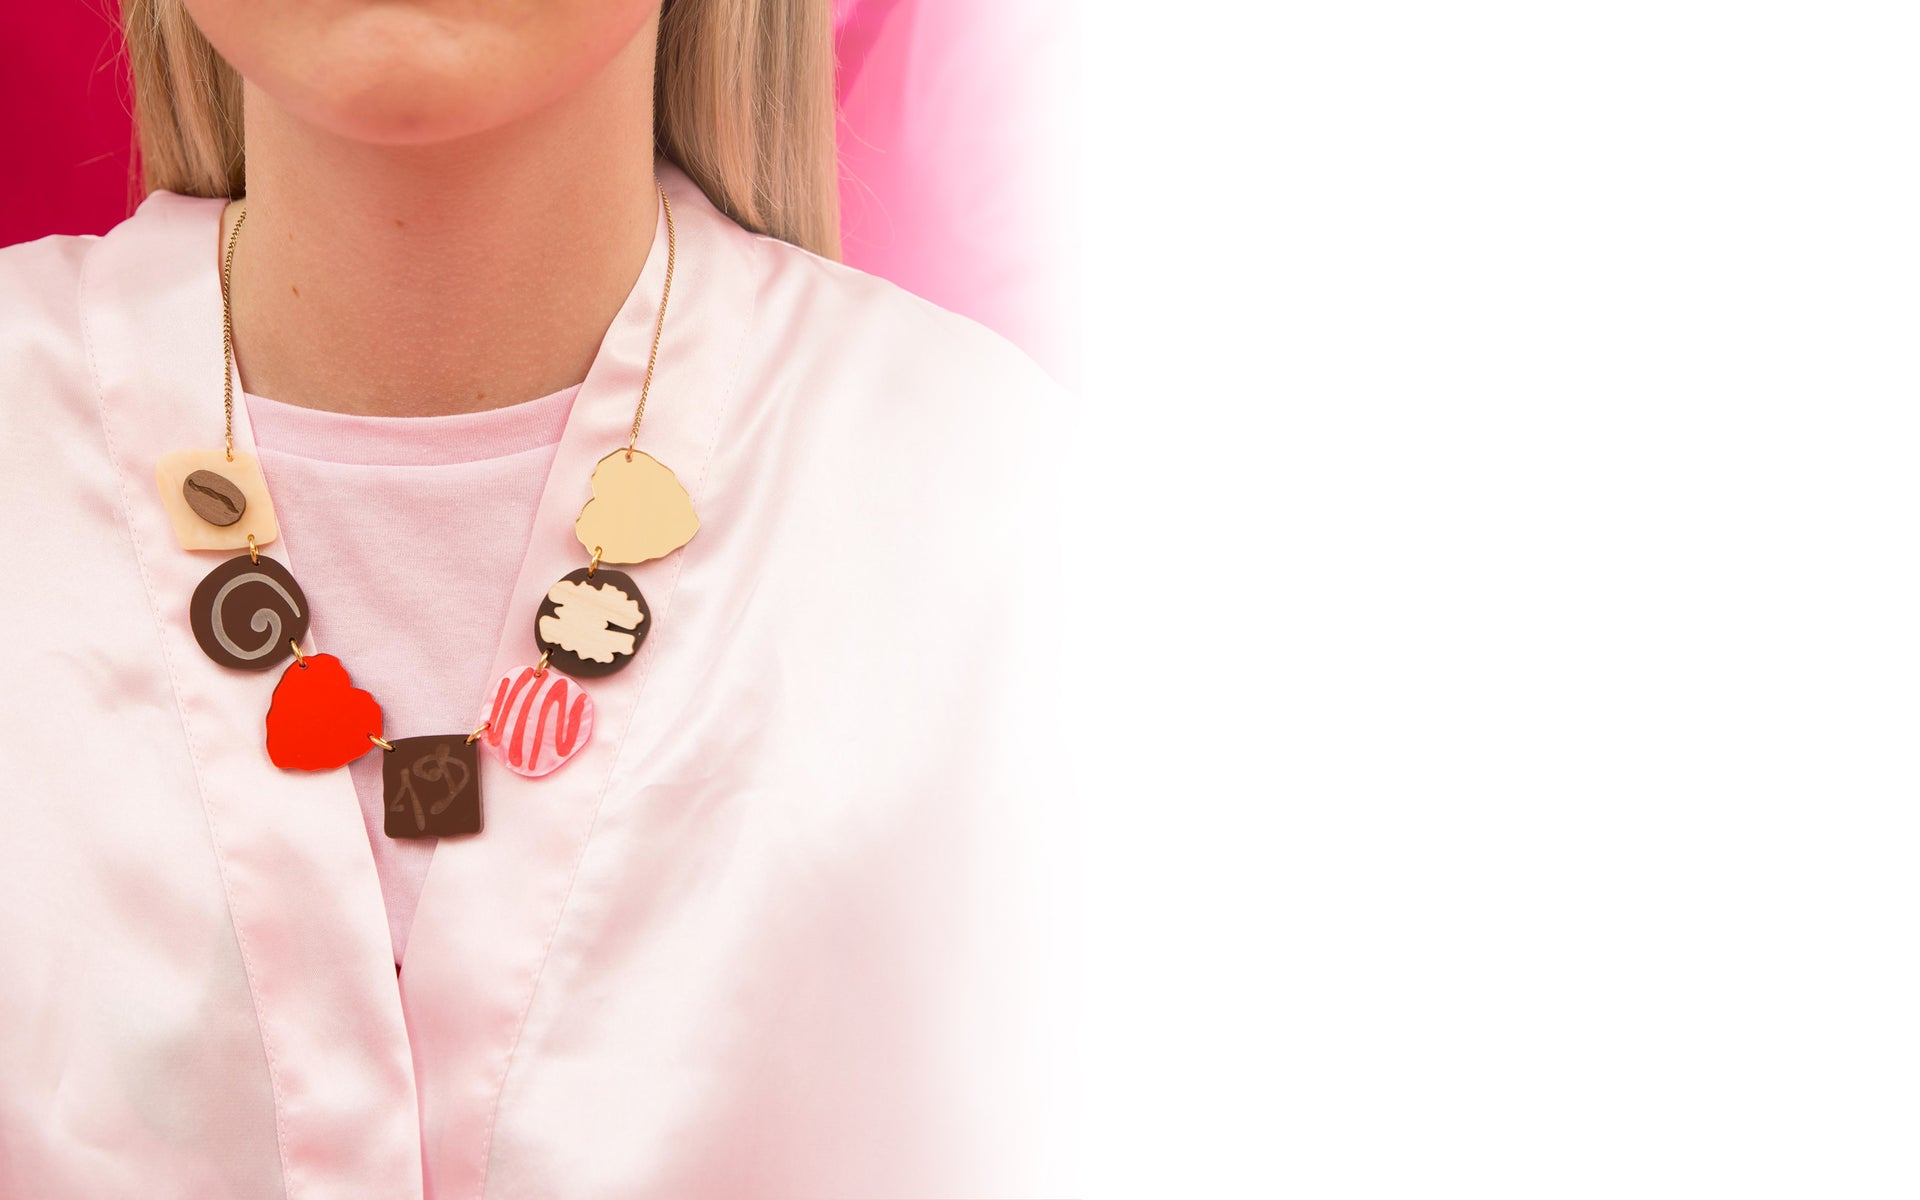 chocolate-box-necklace